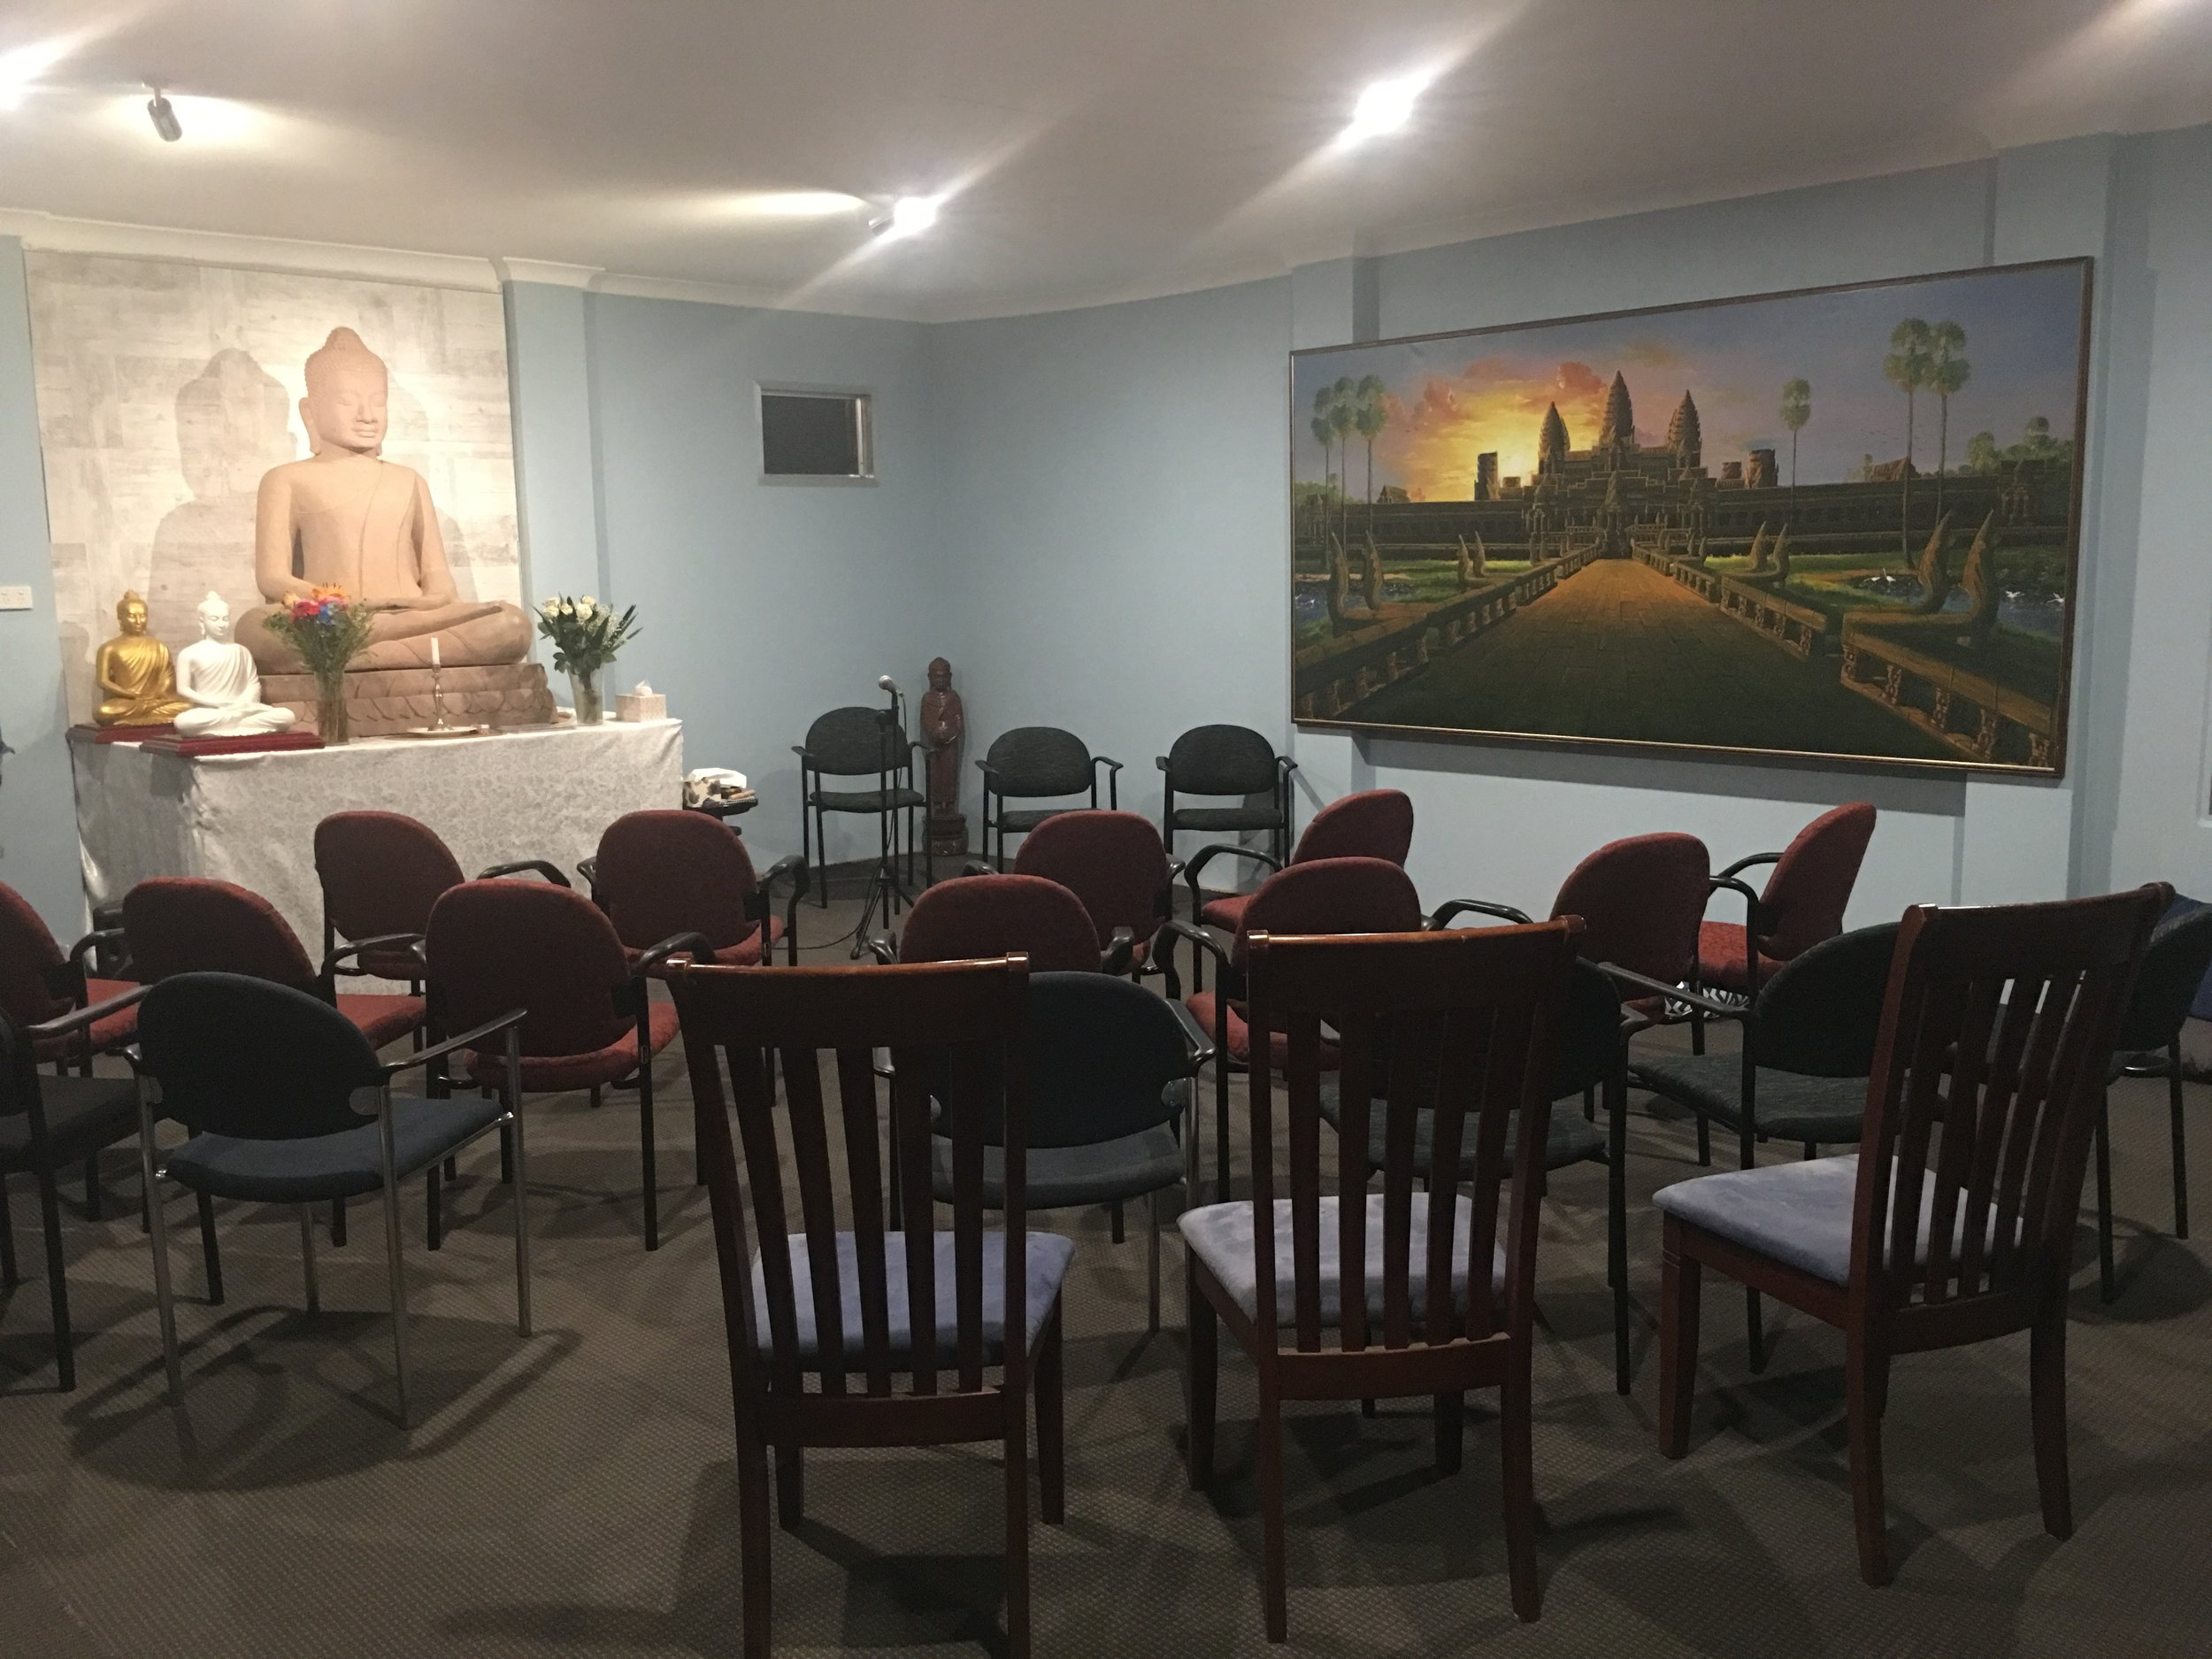 Getting the seating in the Vihara ready for the Meditation conducted by Ajahn Khemavaro on Monday on 27 May 2019.